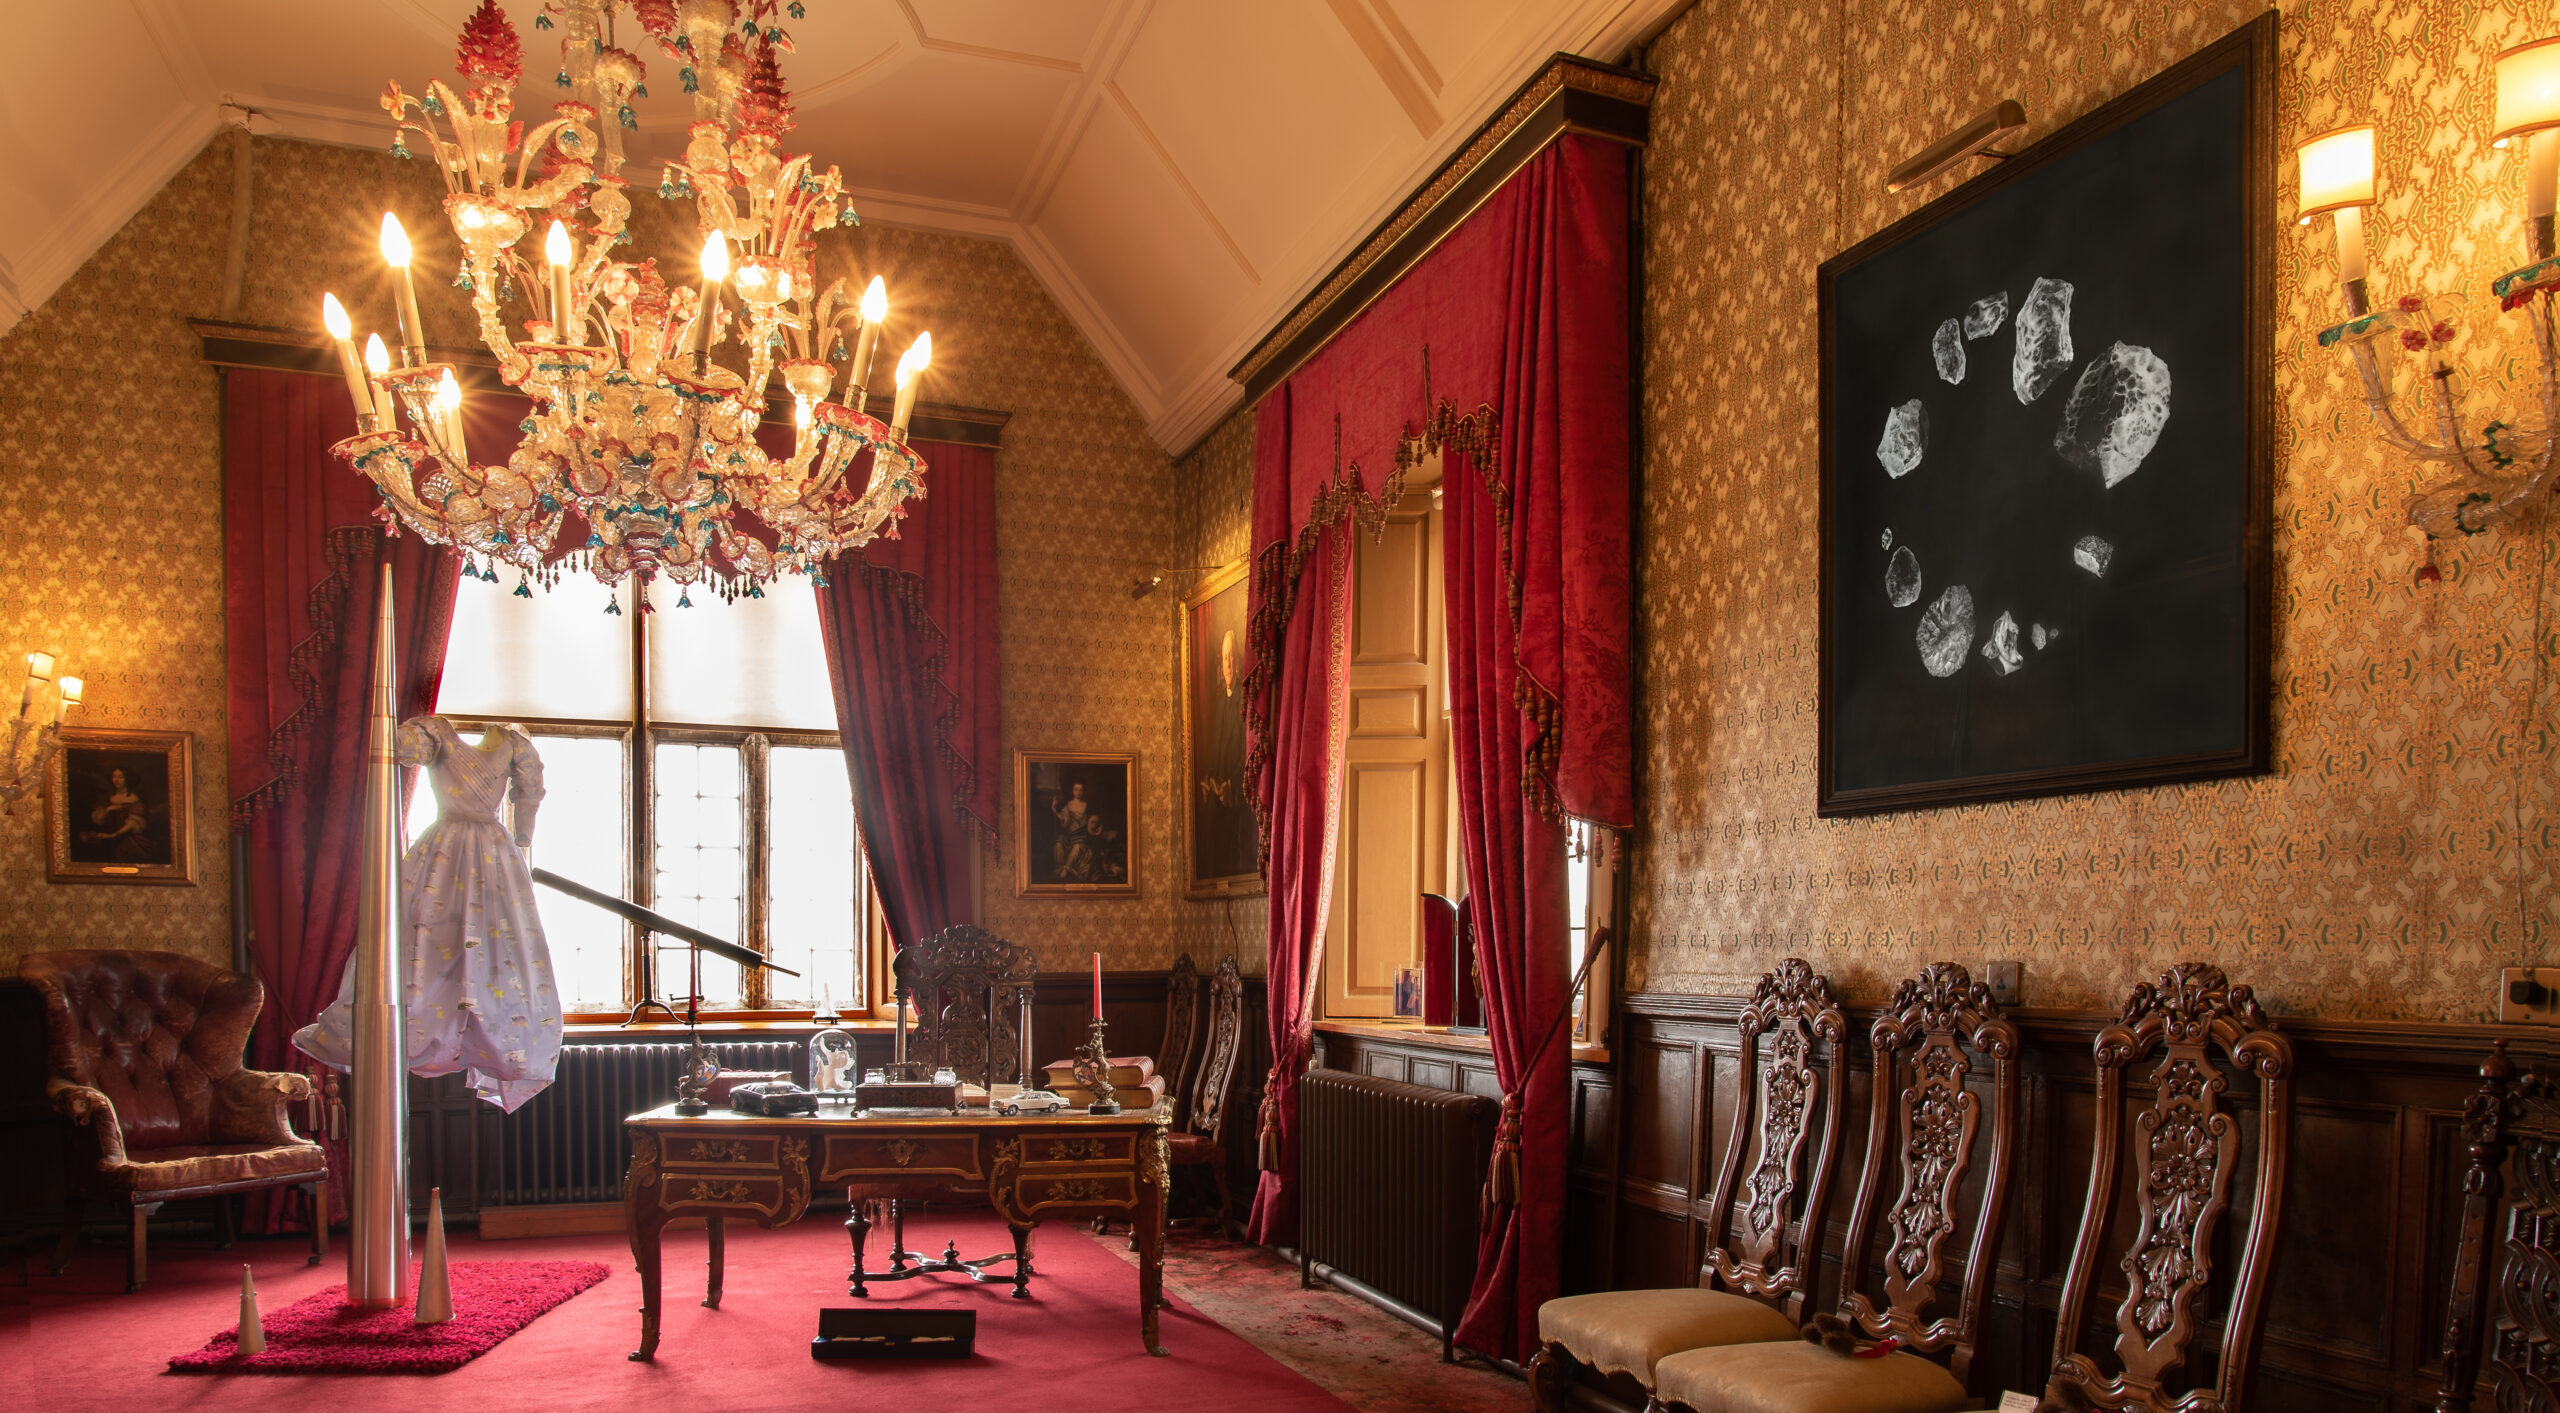 long, grand room inside a stately home, with a red carpet and gold and white wallpaper, fittings and ceiling mouldings. At the far end of the room a dress floats in the air next to a large metal cone; on the right hand wall a drawing on black paper can be seen